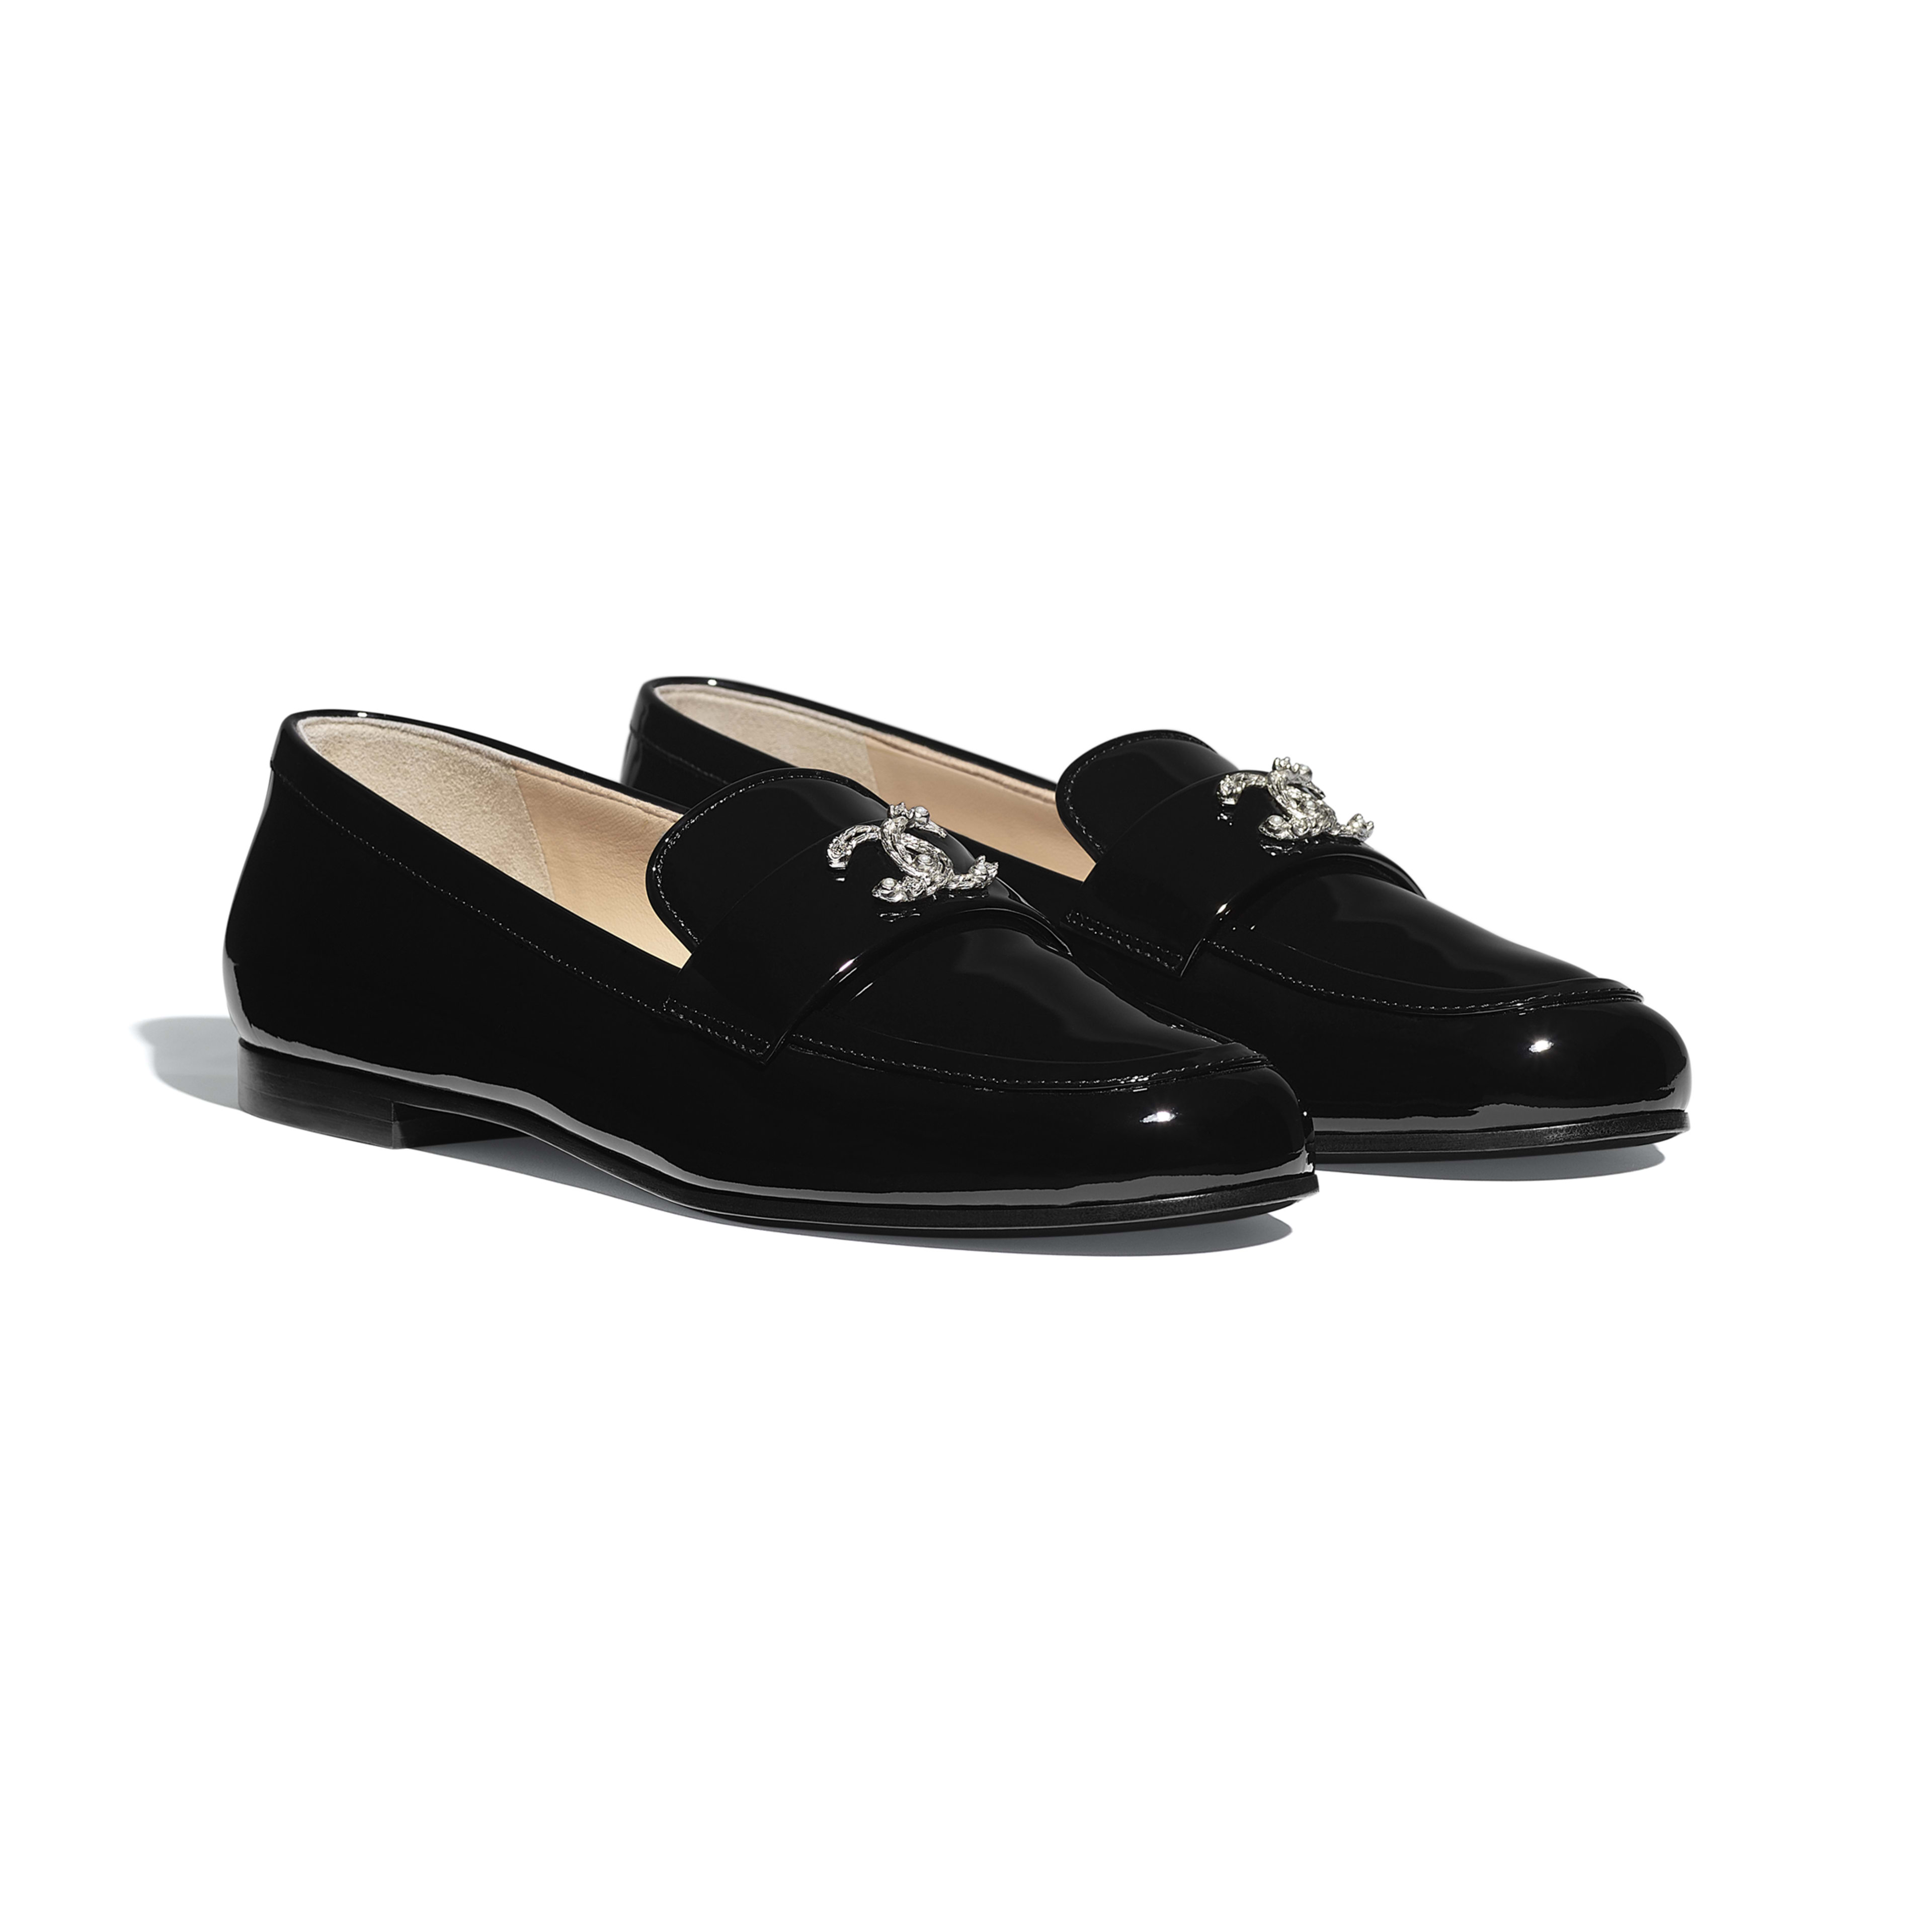 Patent Calfskin Black Loafers   CHANEL